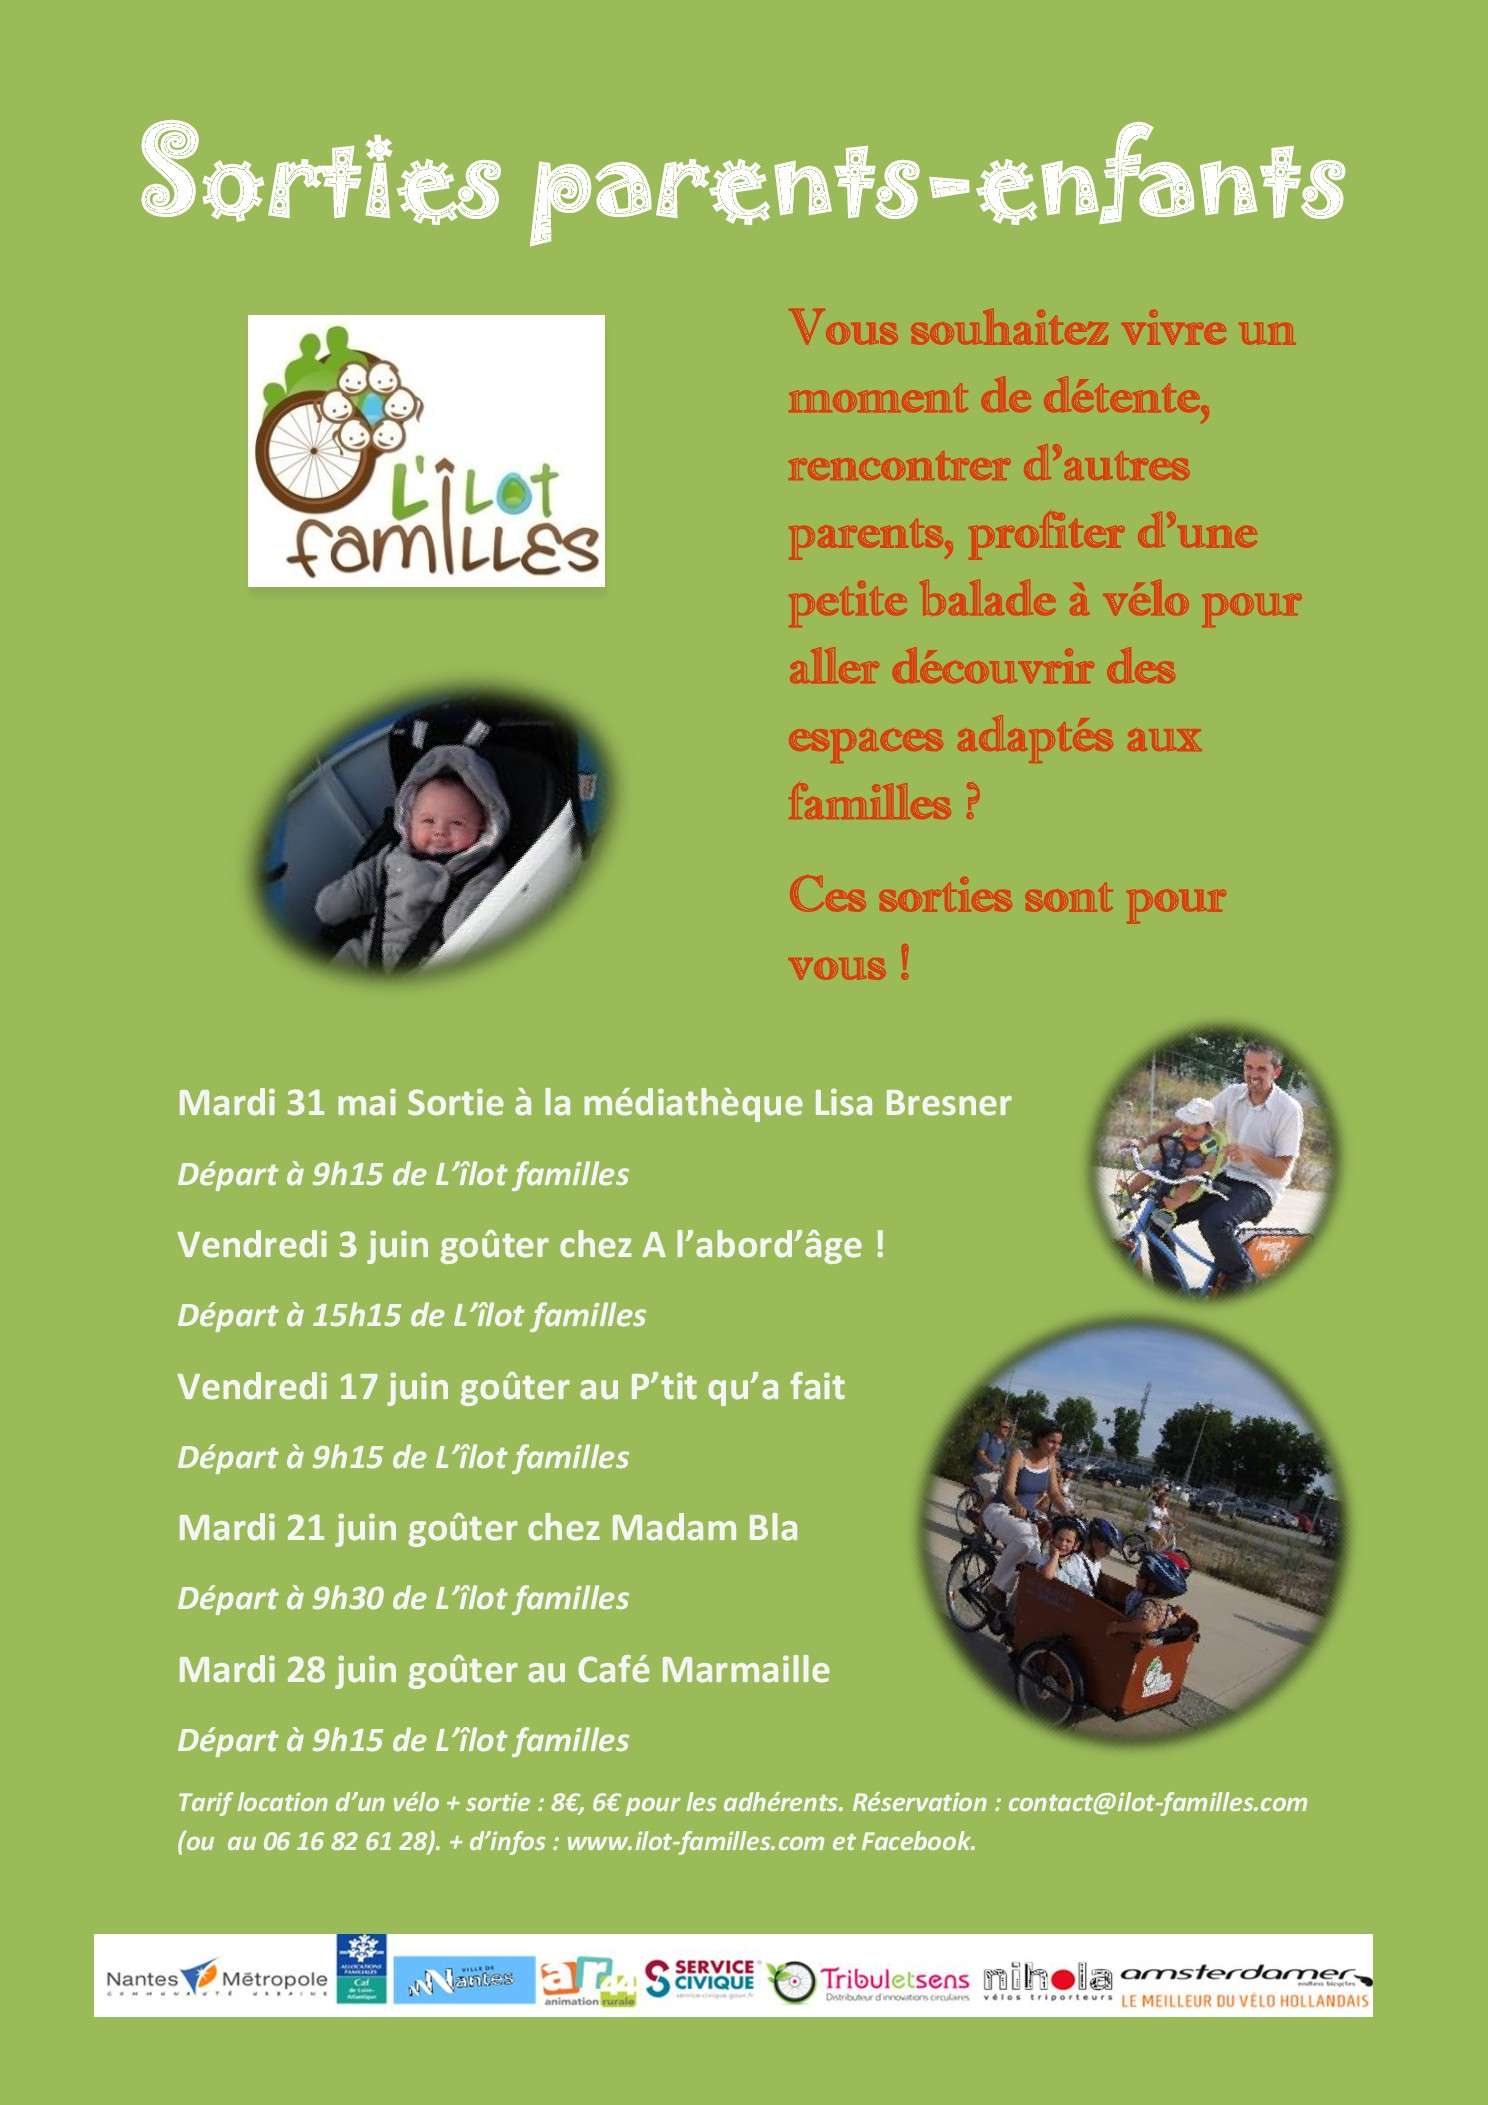 2016 05 Affiche sorties parents enfants